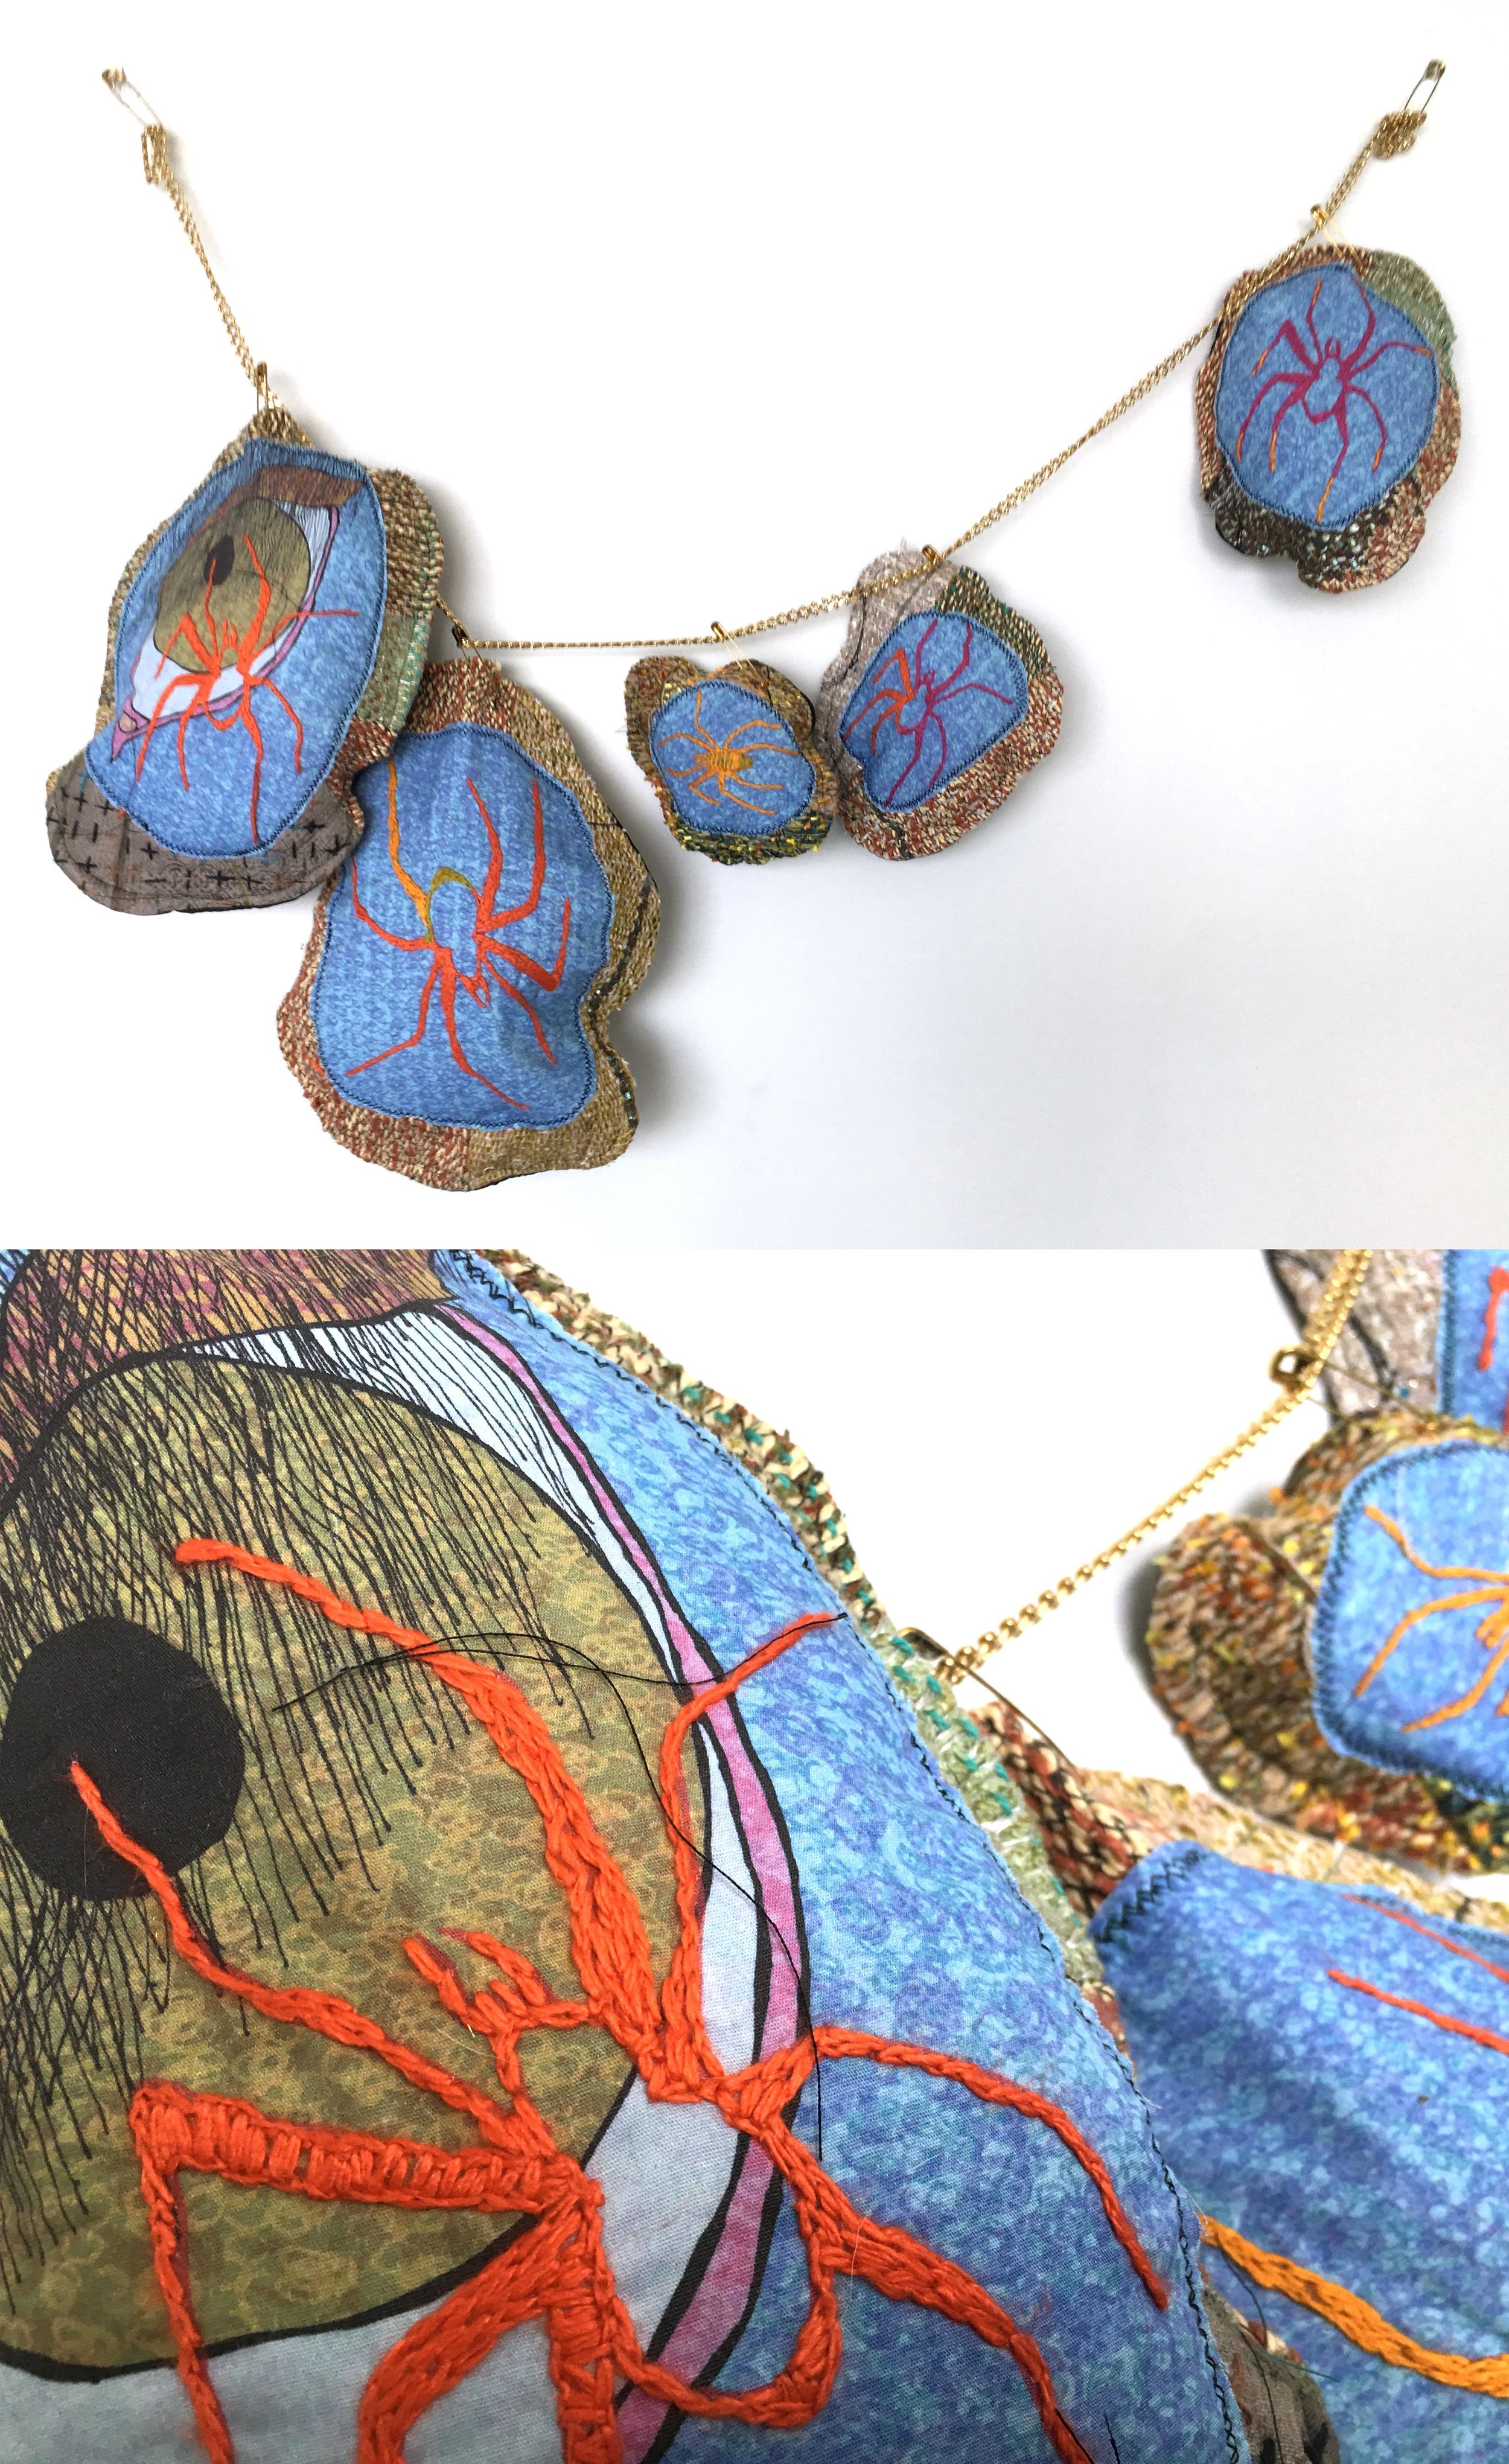 """Spider Necklace  h: 14"""" x w: 30"""" hand-woven and machine-made fabric, embroidery, inkjet prints, fleece, chain 2017"""